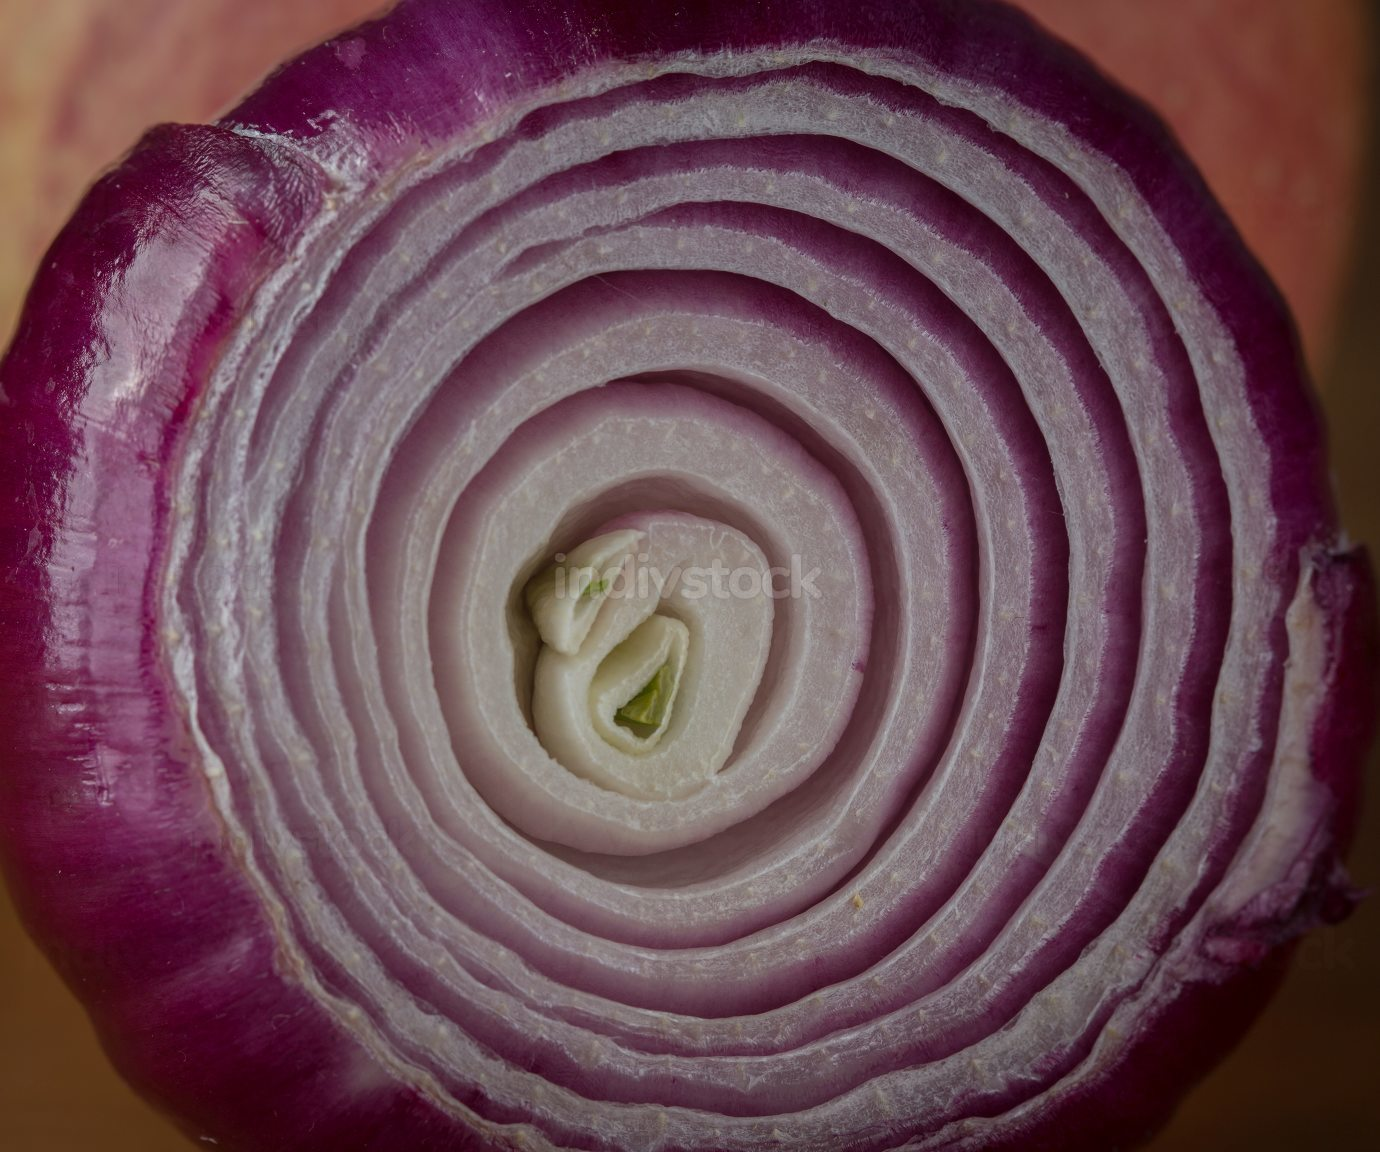 Red onion on wooden table